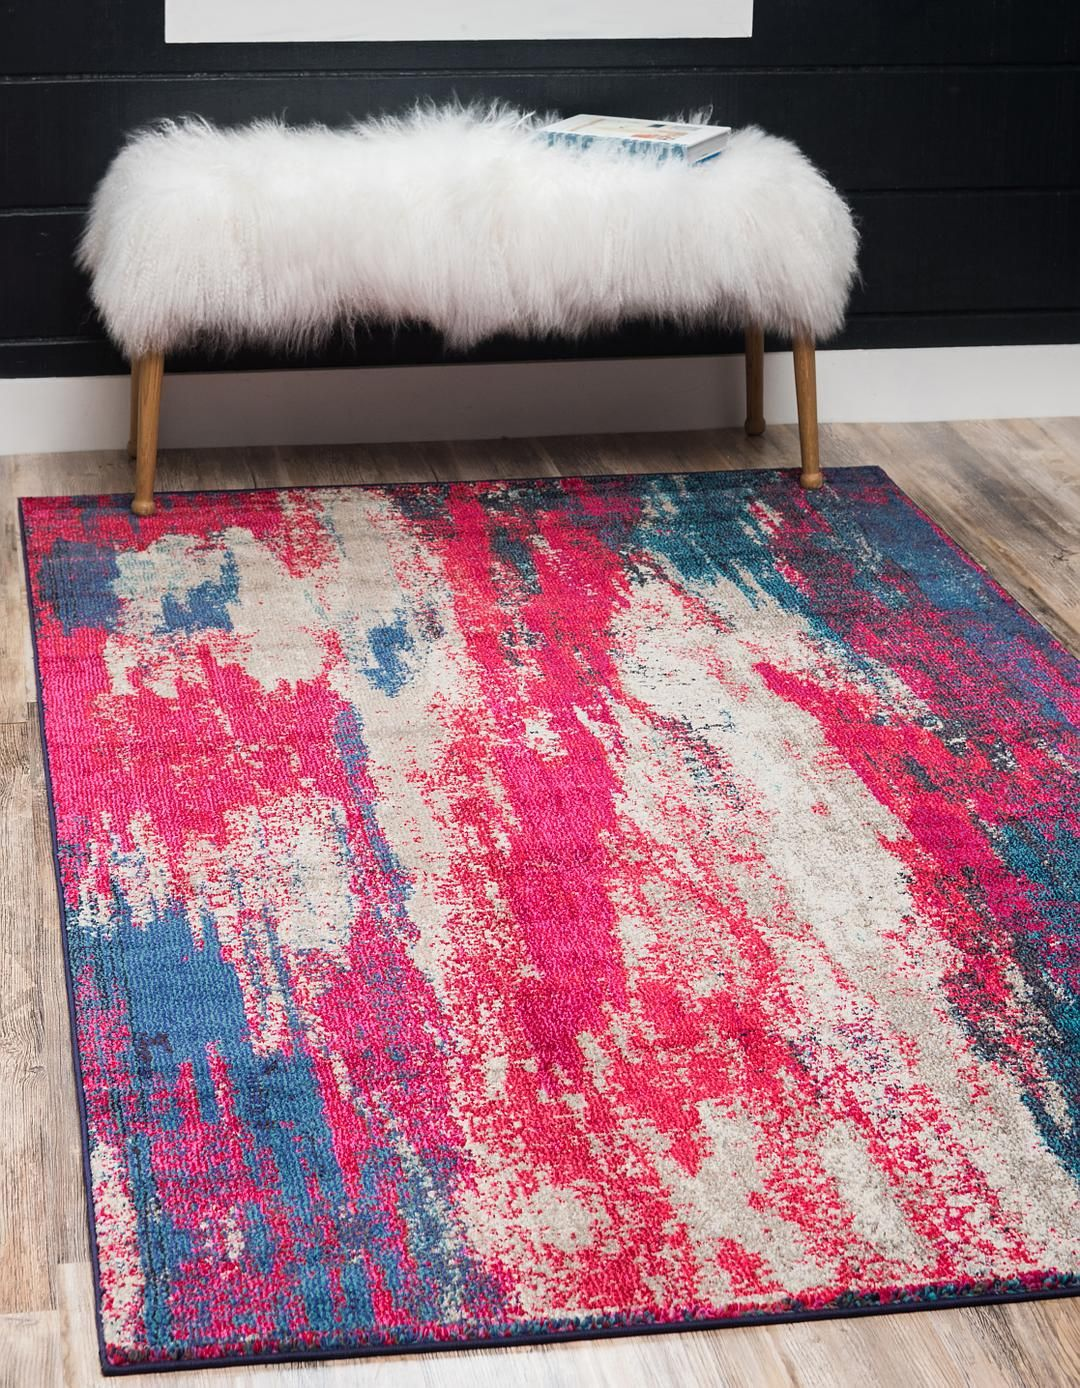 Large Rugs Sydney Red 213cm X 305cm Barcelona Rug Area Rugs Au Rugs Rug Inspo